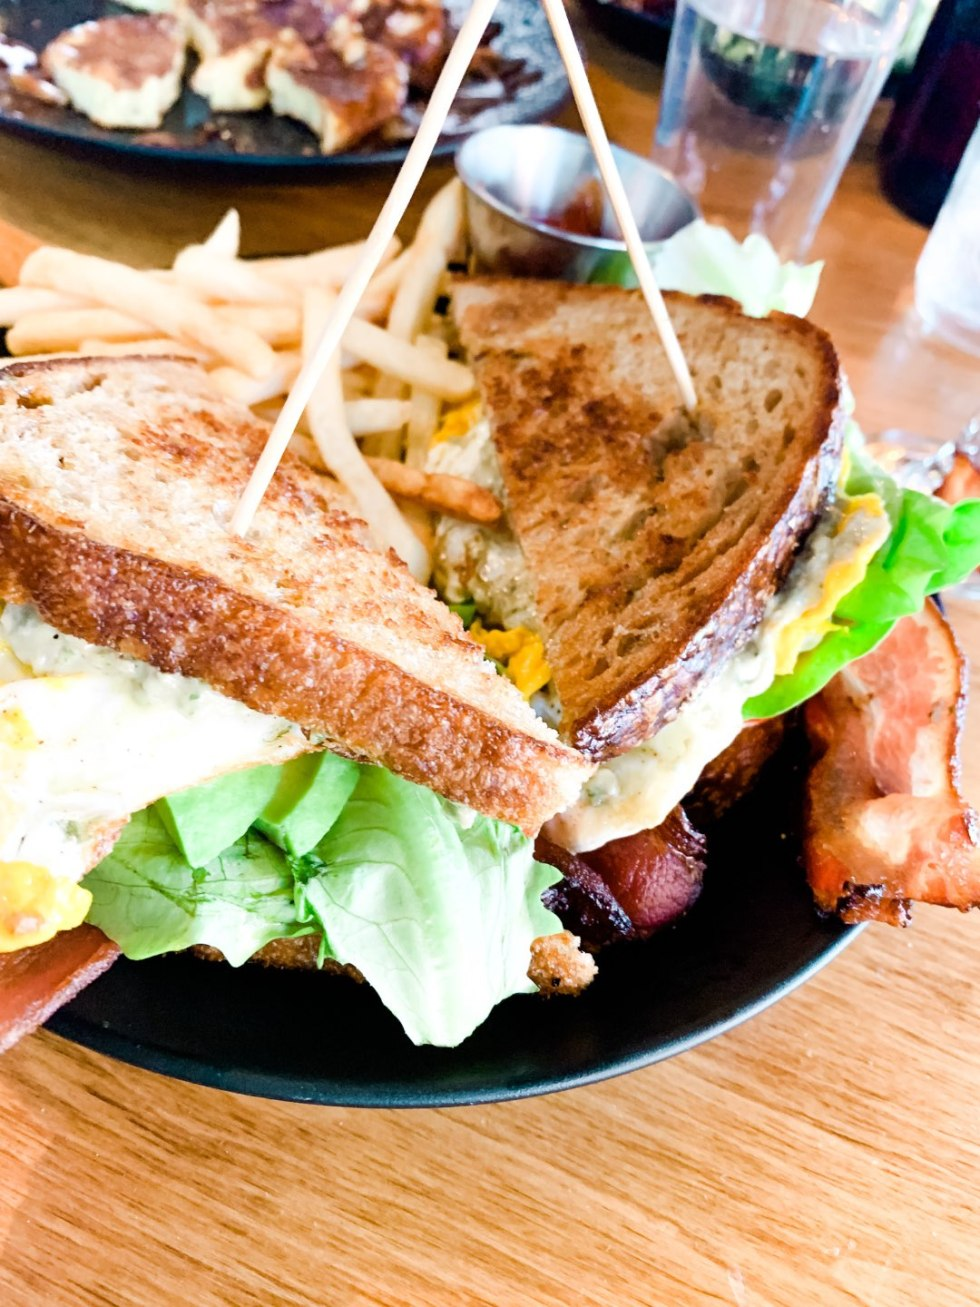 Where to Get Brunch in Raleigh: the 7 Best Spots - I'm Fixin' To - @mbg0112 | Brunch in Raleigh by popular Raleigh blog, I'm Fixin To: image of a Whiskey Kitchen sandwich.